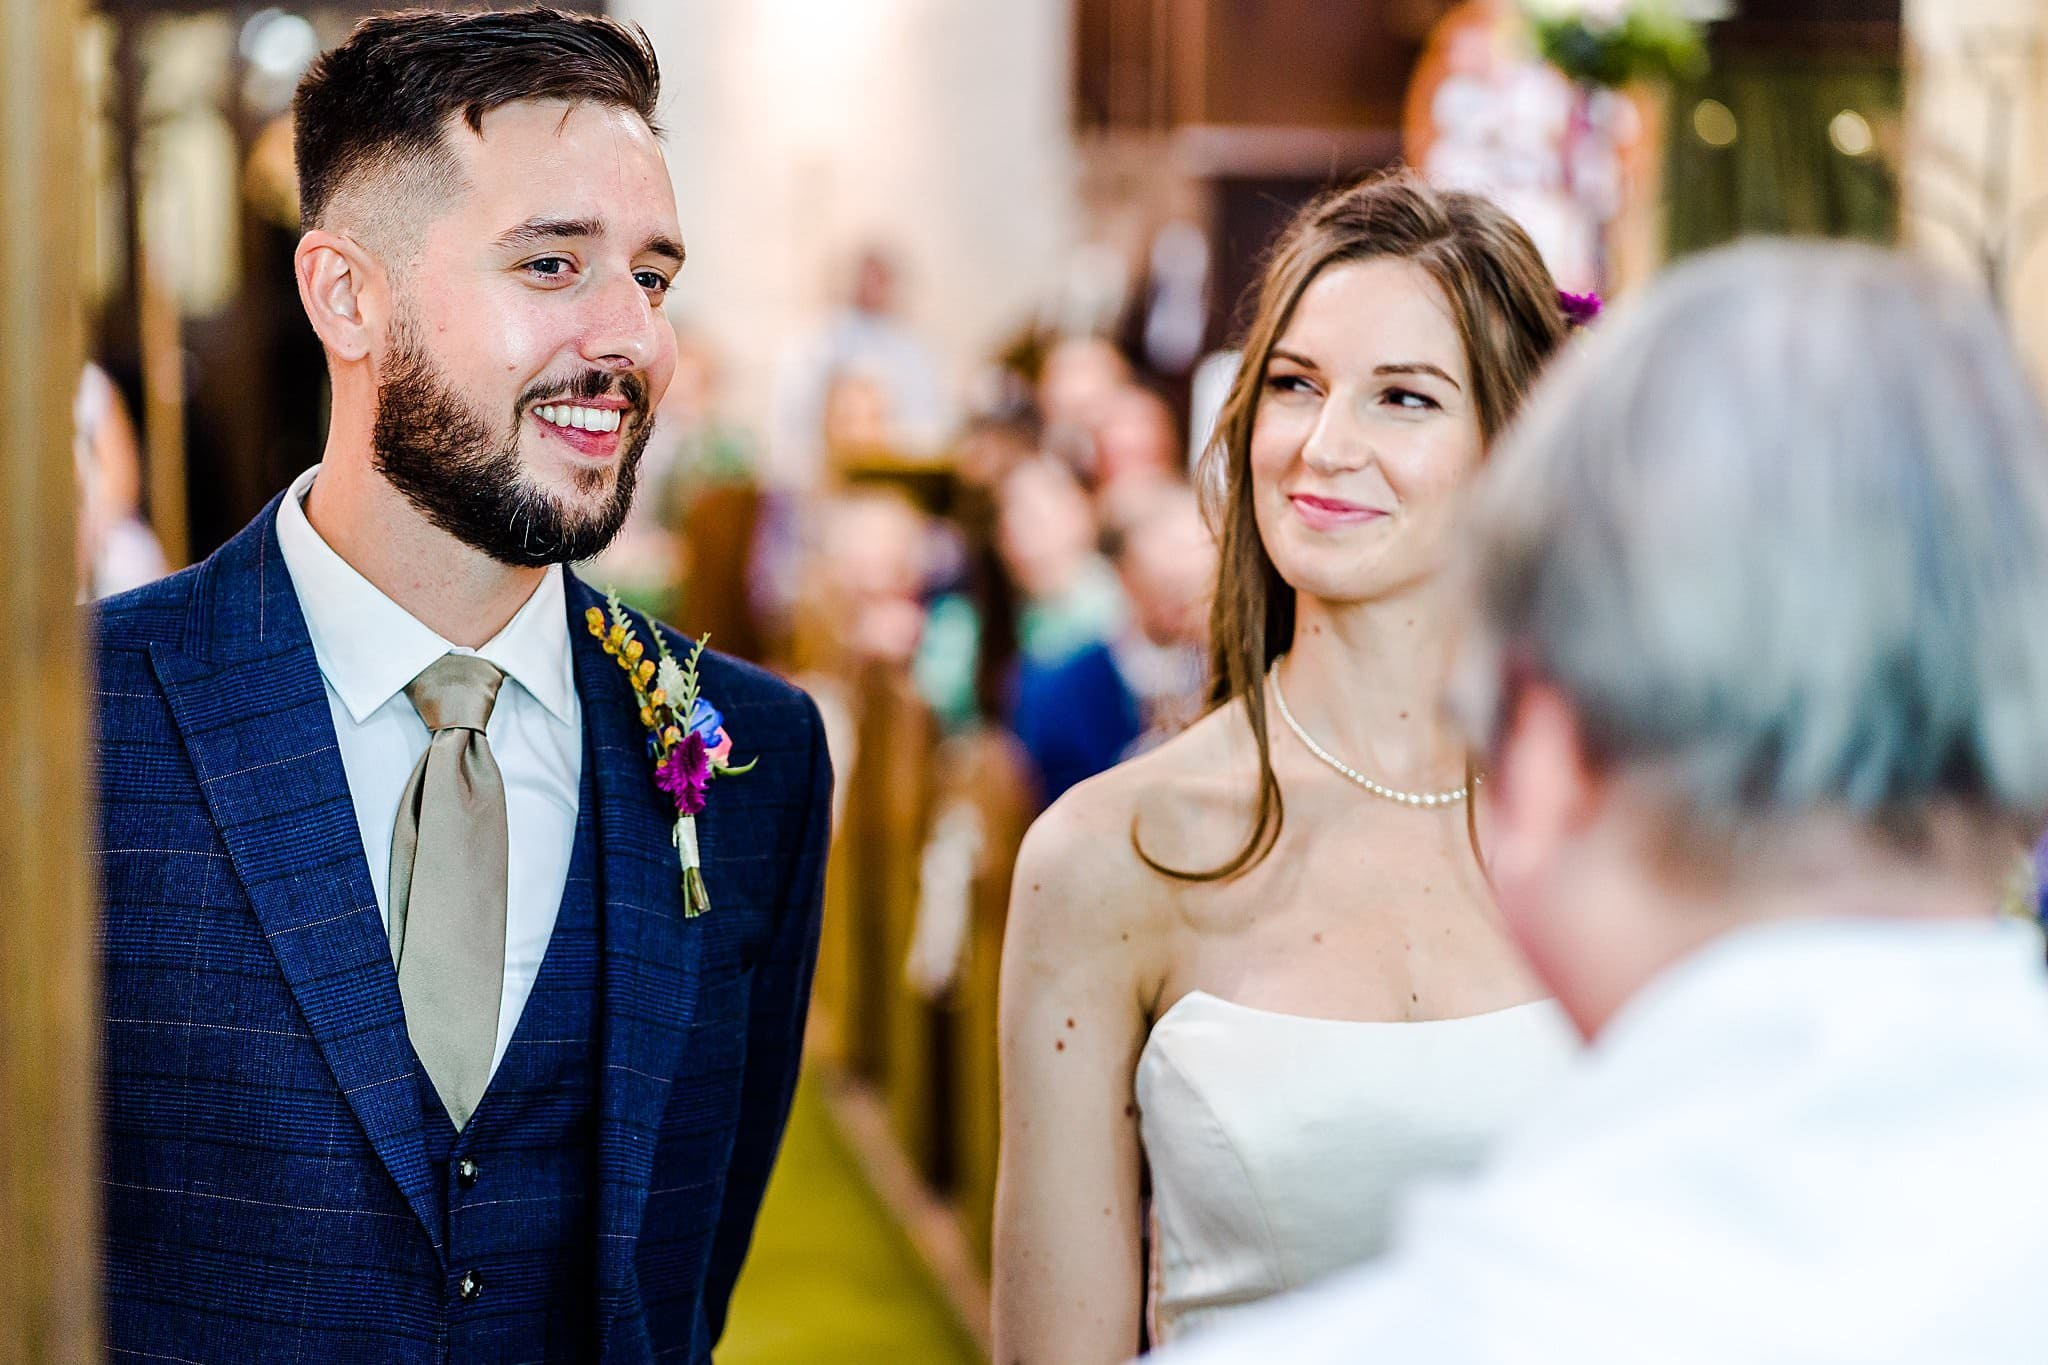 Bride looks at her groom whilst he smiles during their vows